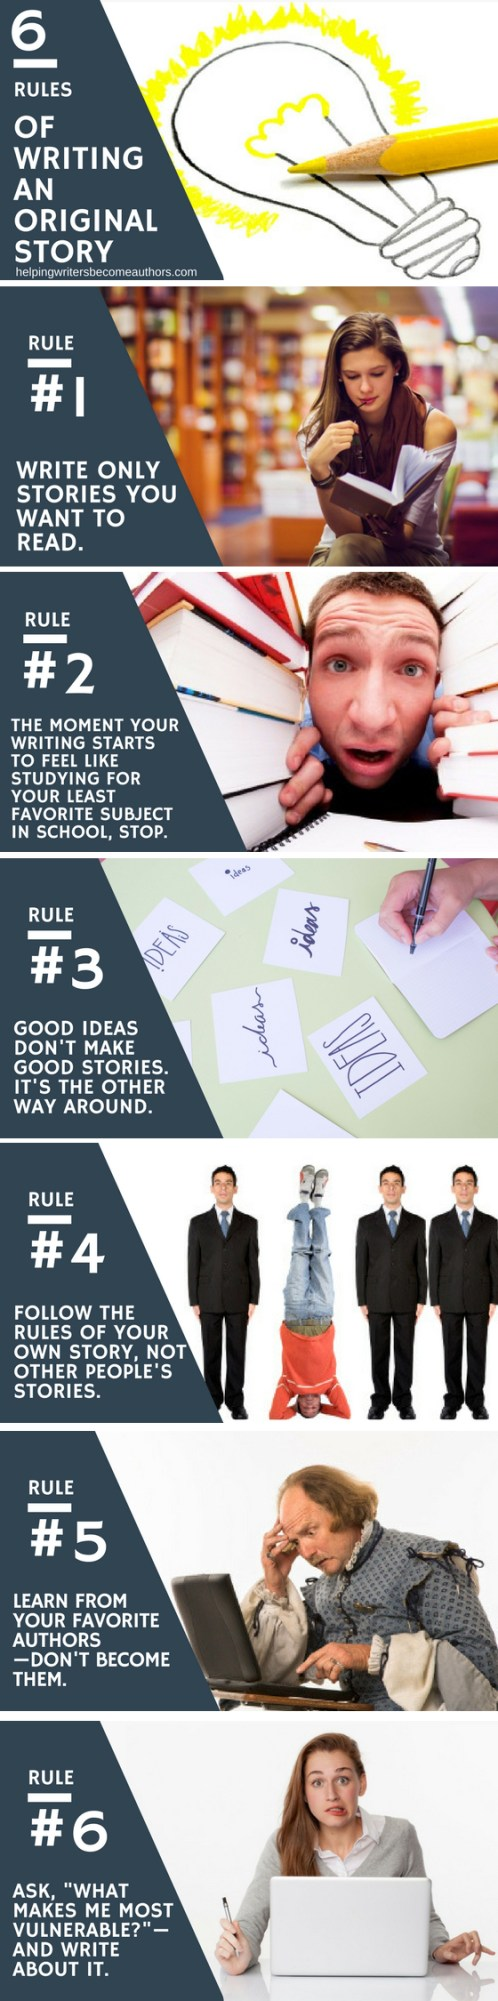 6 Rules of Writing an Original Story Infographic